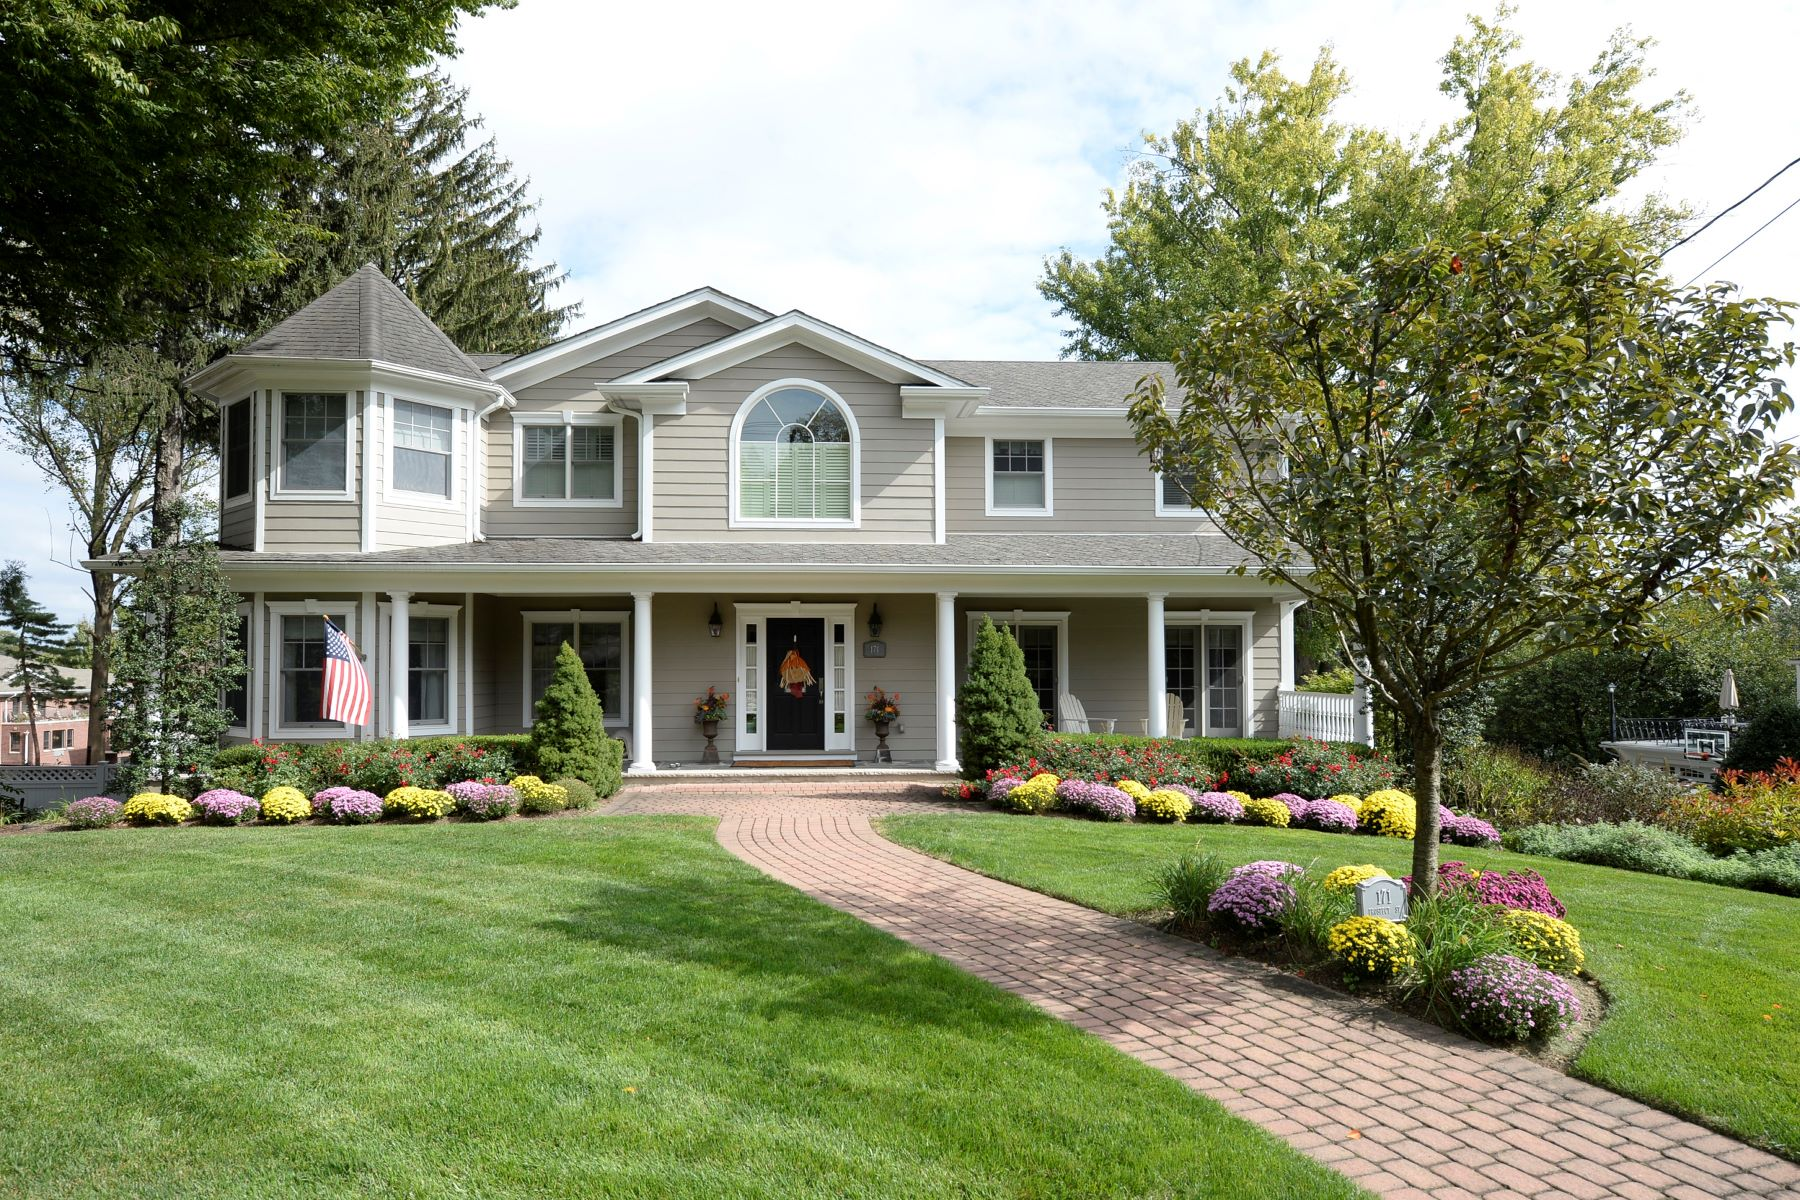 Single Family Home for Sale at Sophisticated CenterHall Colonial Over 5,000 Square Feet. 171 Prospect Street, Ridgewood, New Jersey 07450 United States